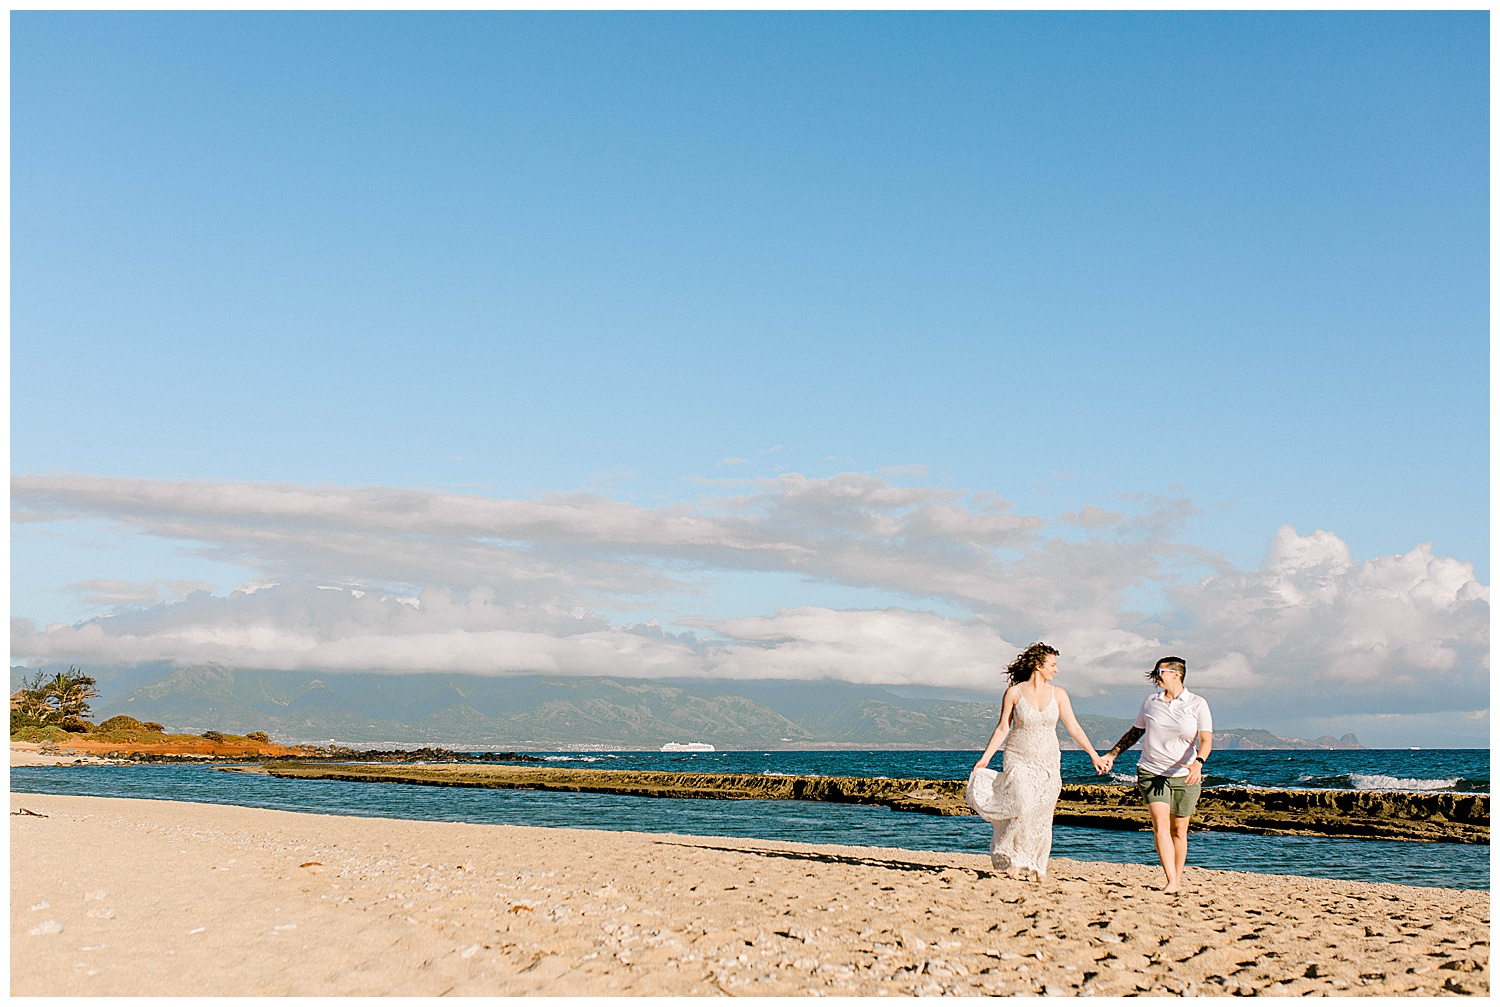 Michelle + Amie | Honeymoon Session on Maui's North Shore